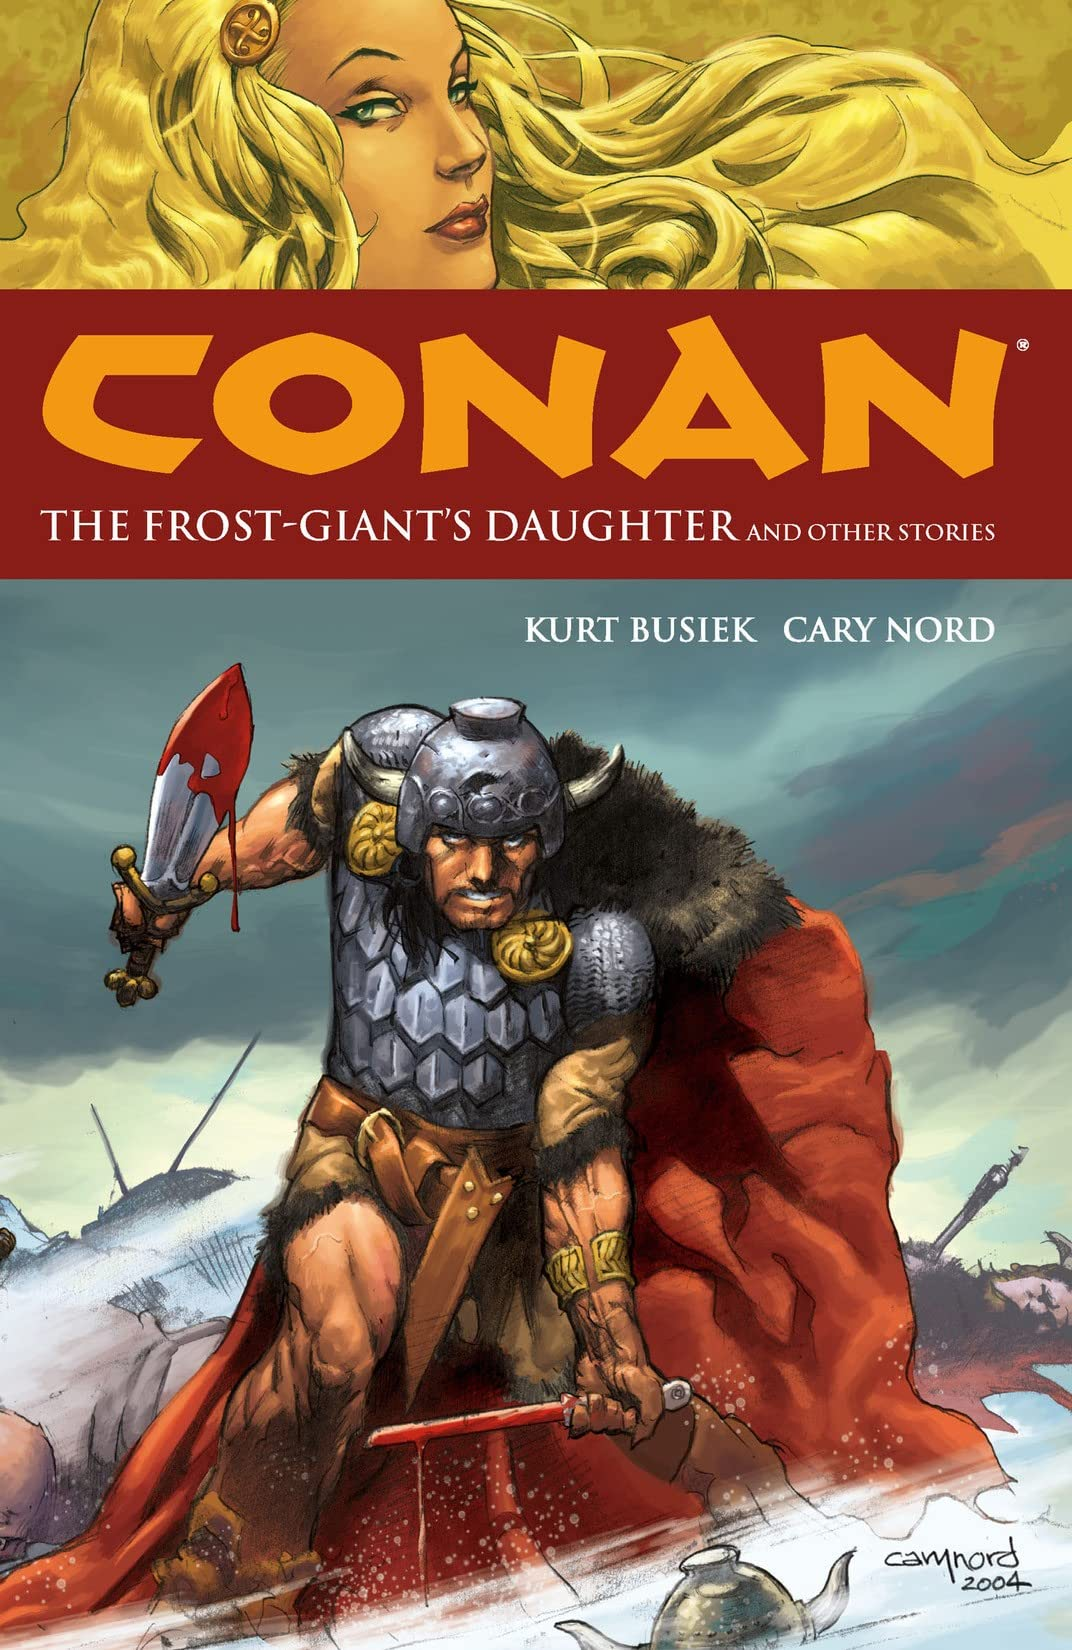 Conan Vol. 1: The Frost-Giant's Daughter and Other Stories